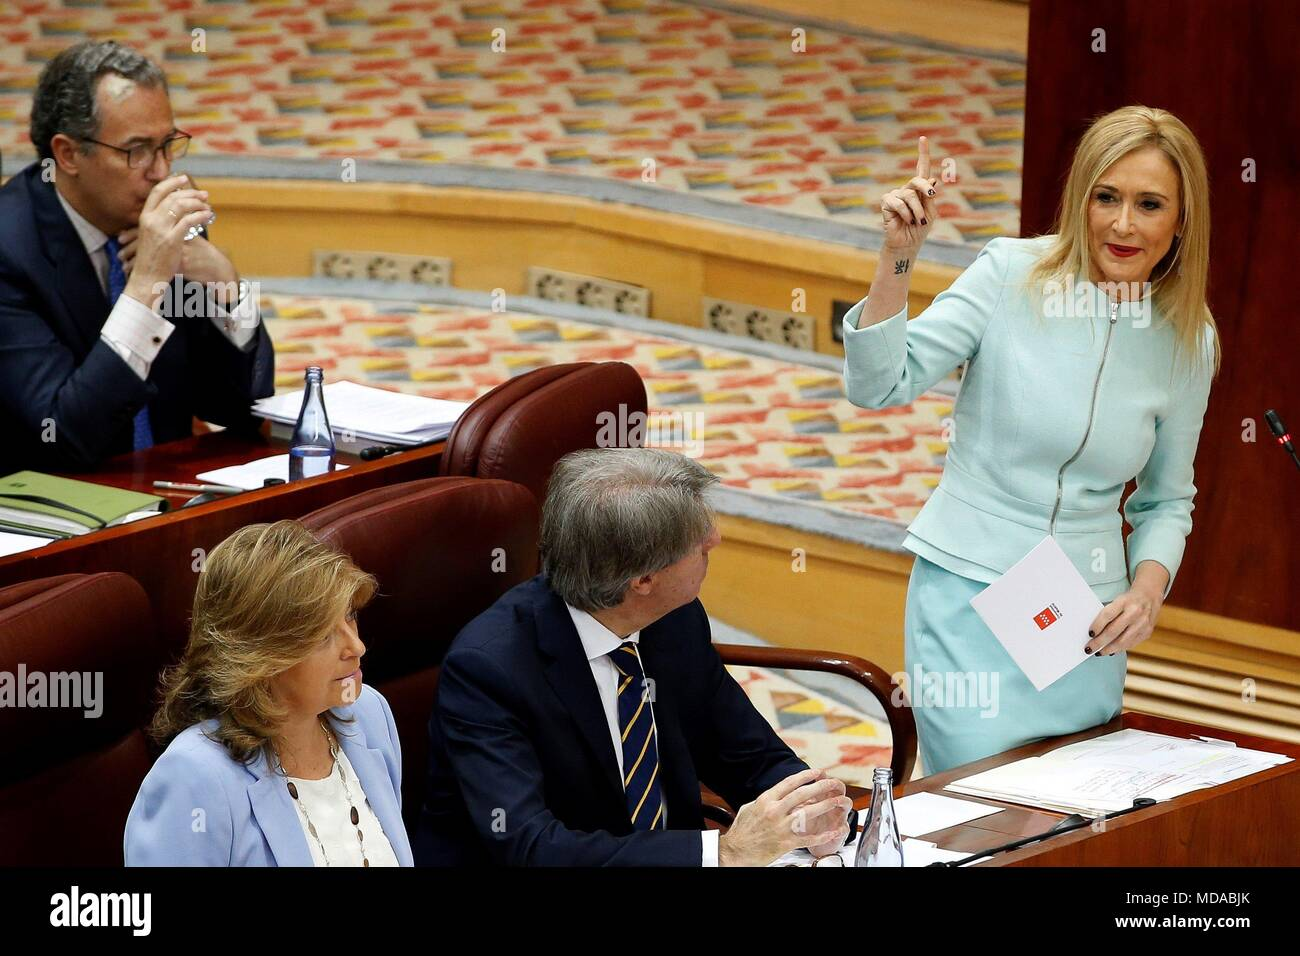 Madrid regional Government President, Cristina Cifuentes (R), talks during the plenary session of the regional Assembly, in Madrid, Spain, 19 April 2018. Cifuentes will answer questions related to the scandal for the alleged falsification of her masters degree grades at Rey Juan Carlos University. EFE/Mariscal - Stock Image